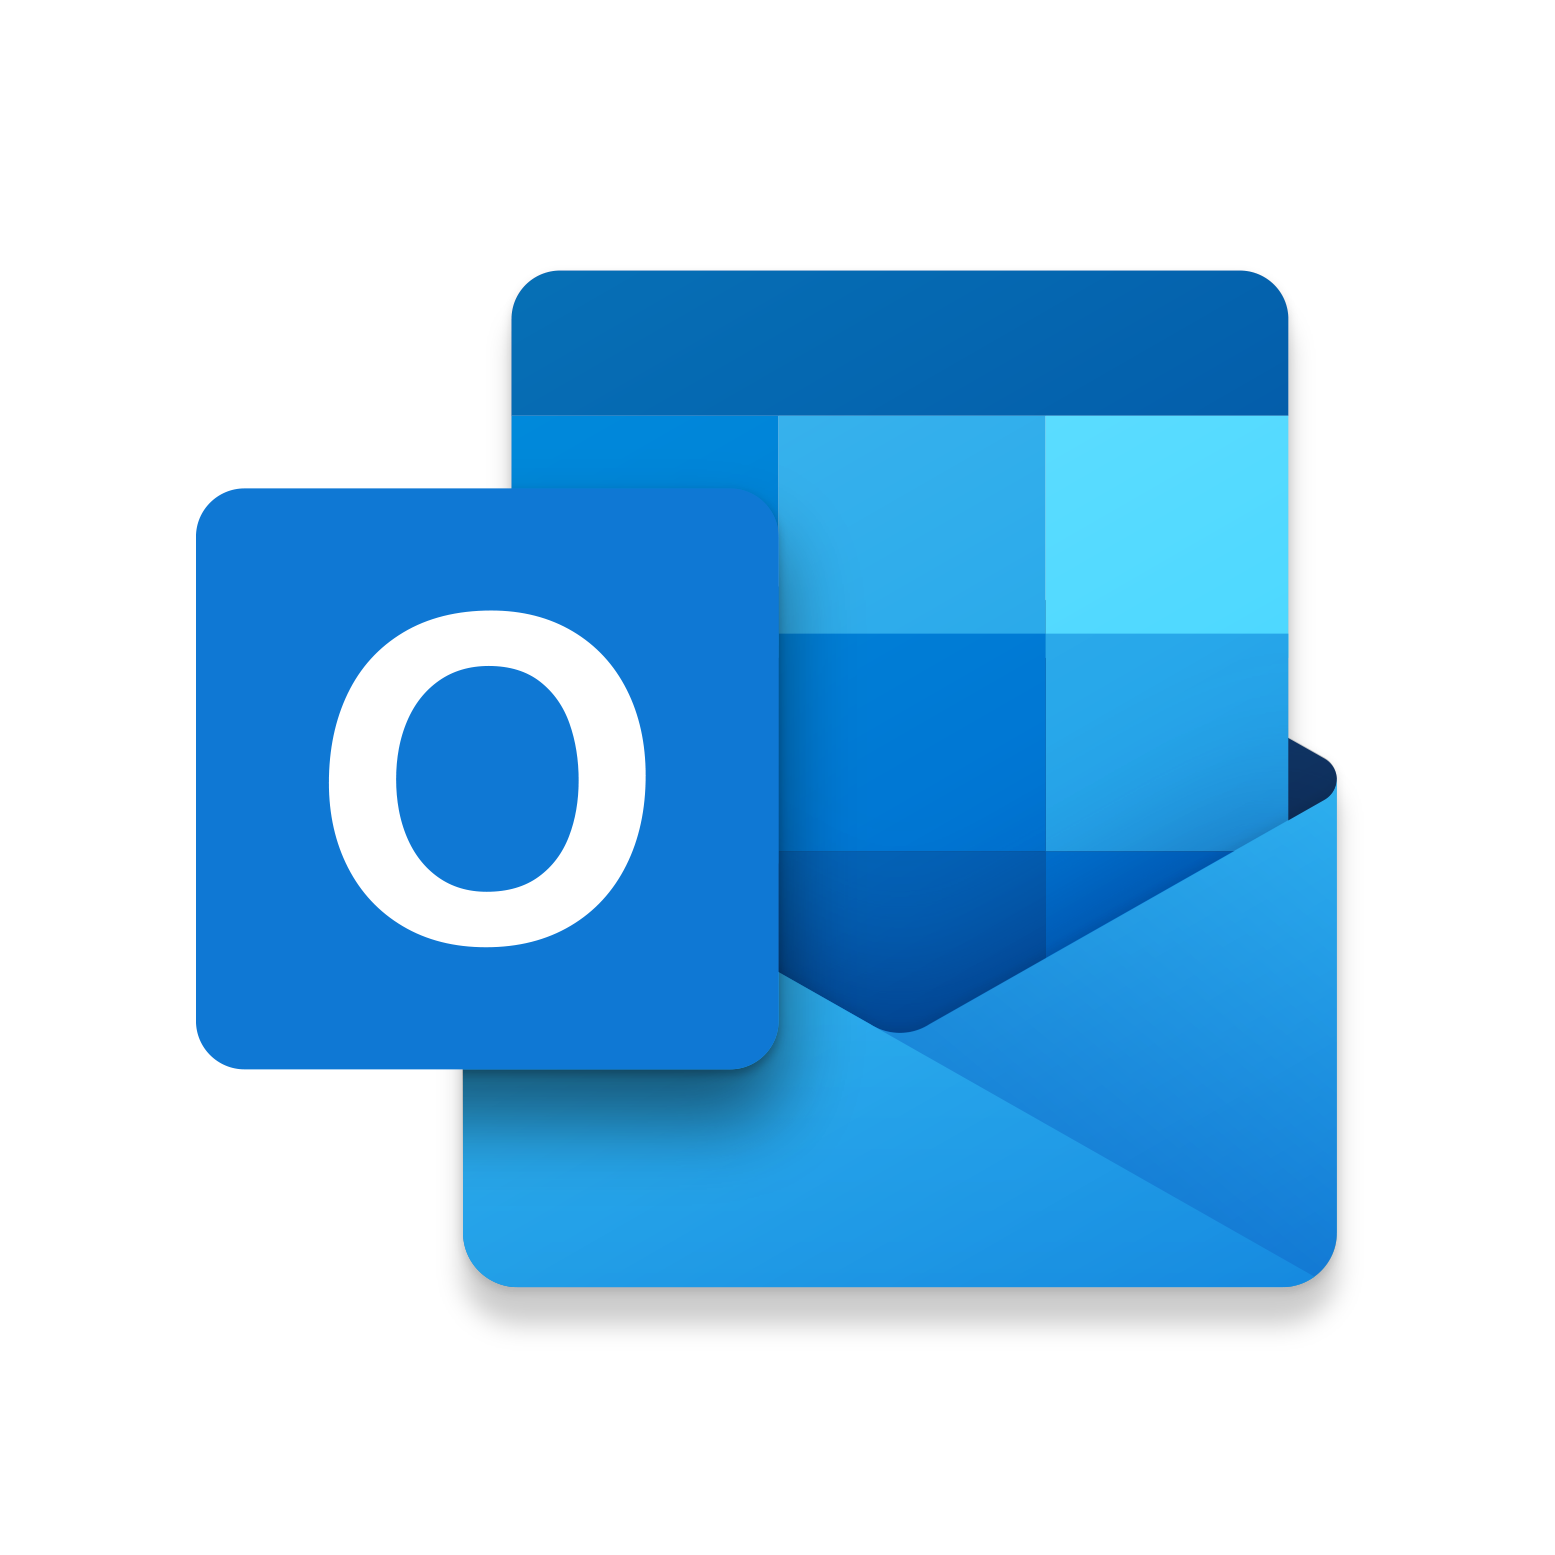 download outlook express for win 7 8 8.1 and 10